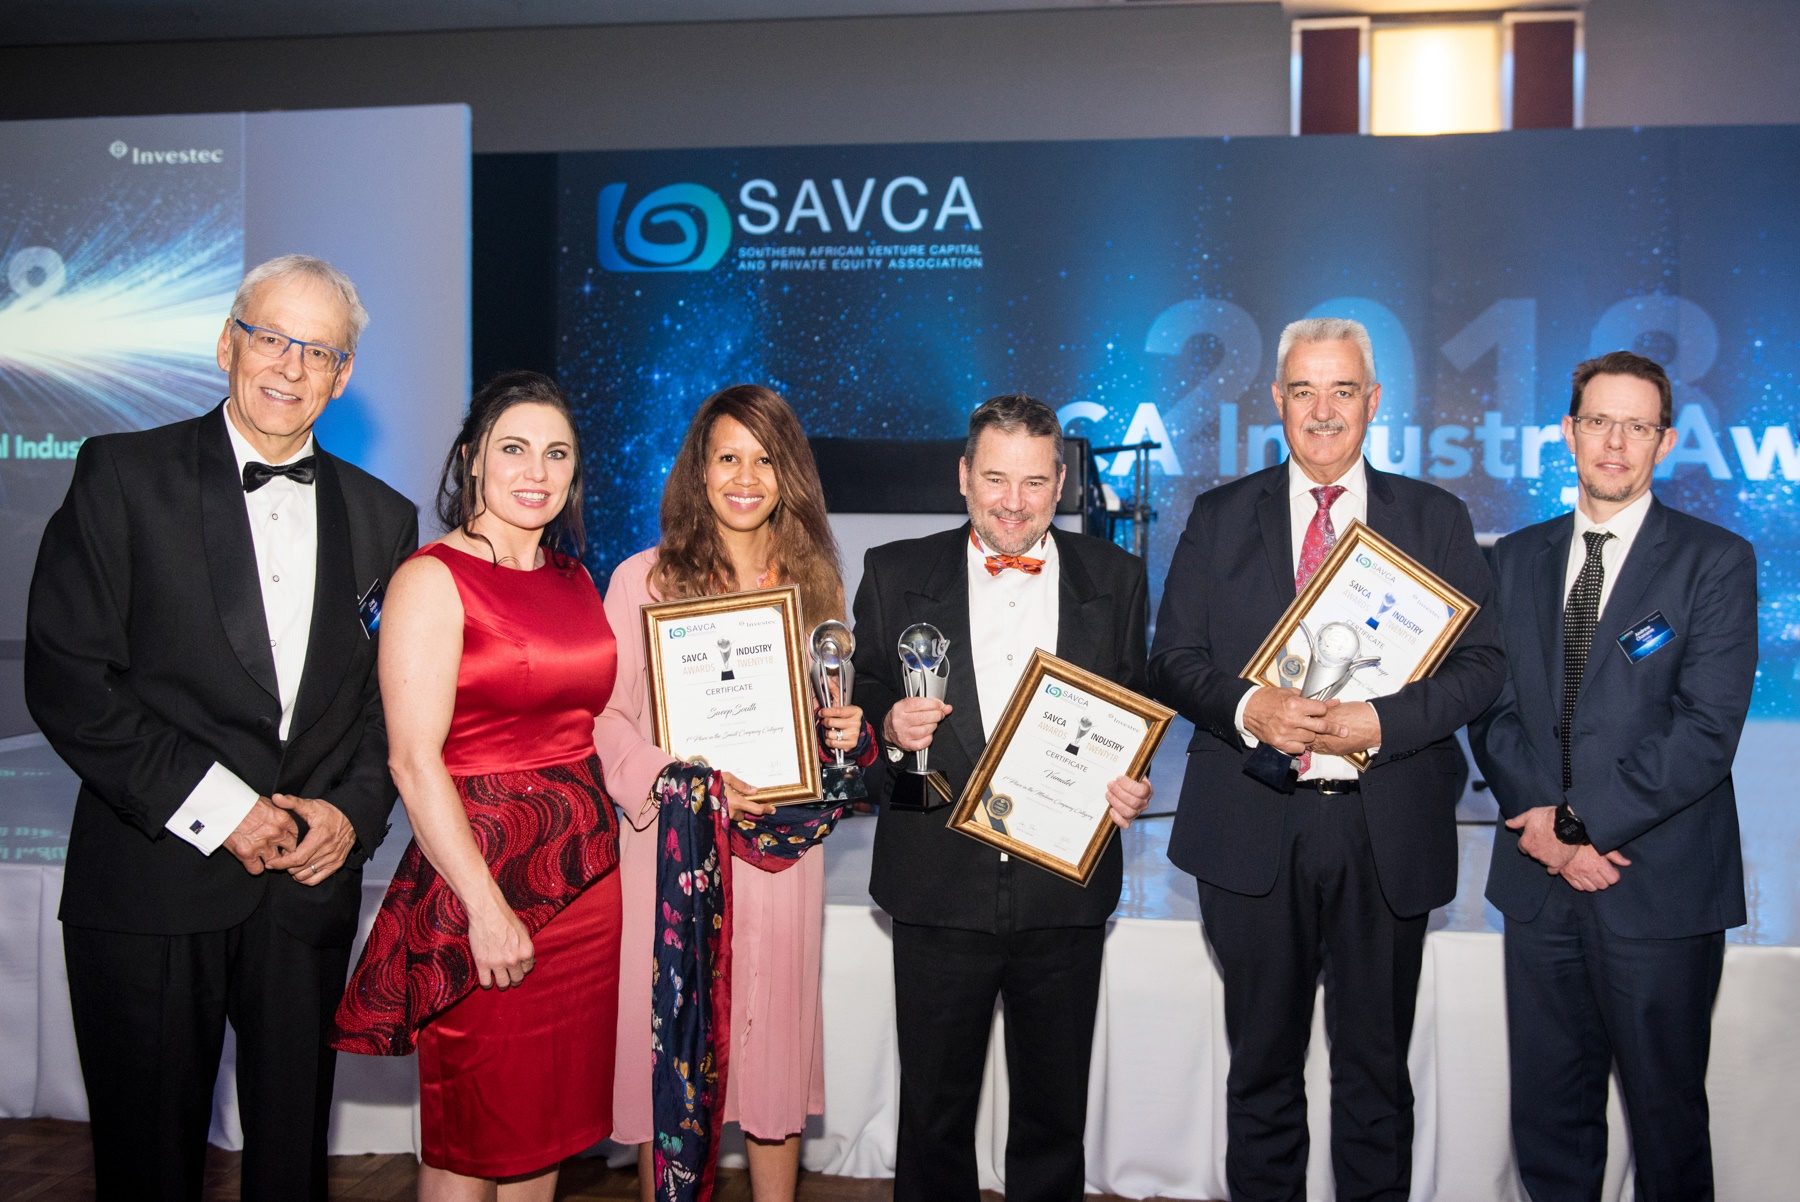 SAVCA Award Winners